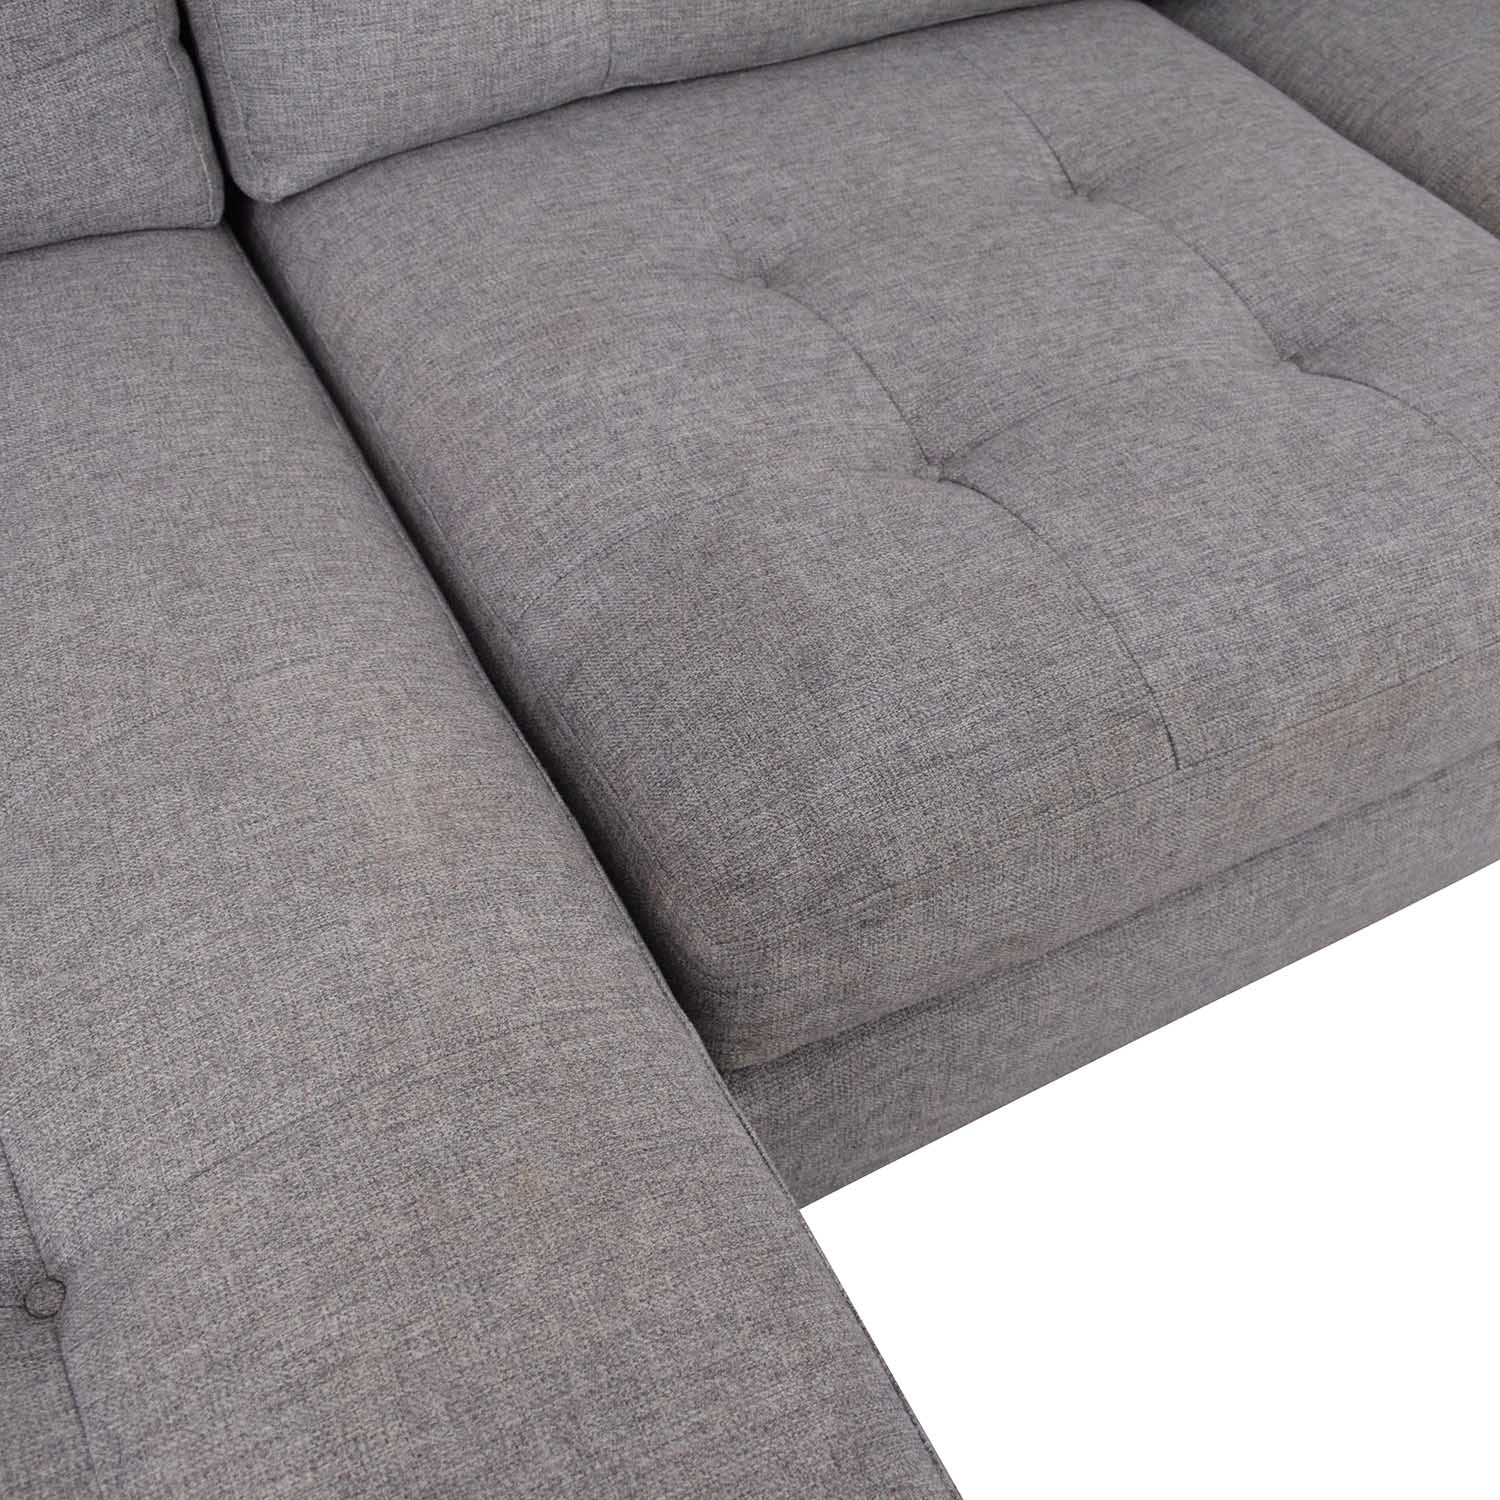 Crate & Barrel Crate & Barrel Petrie Mid Century Sectional Sofa with Chaise Sofas